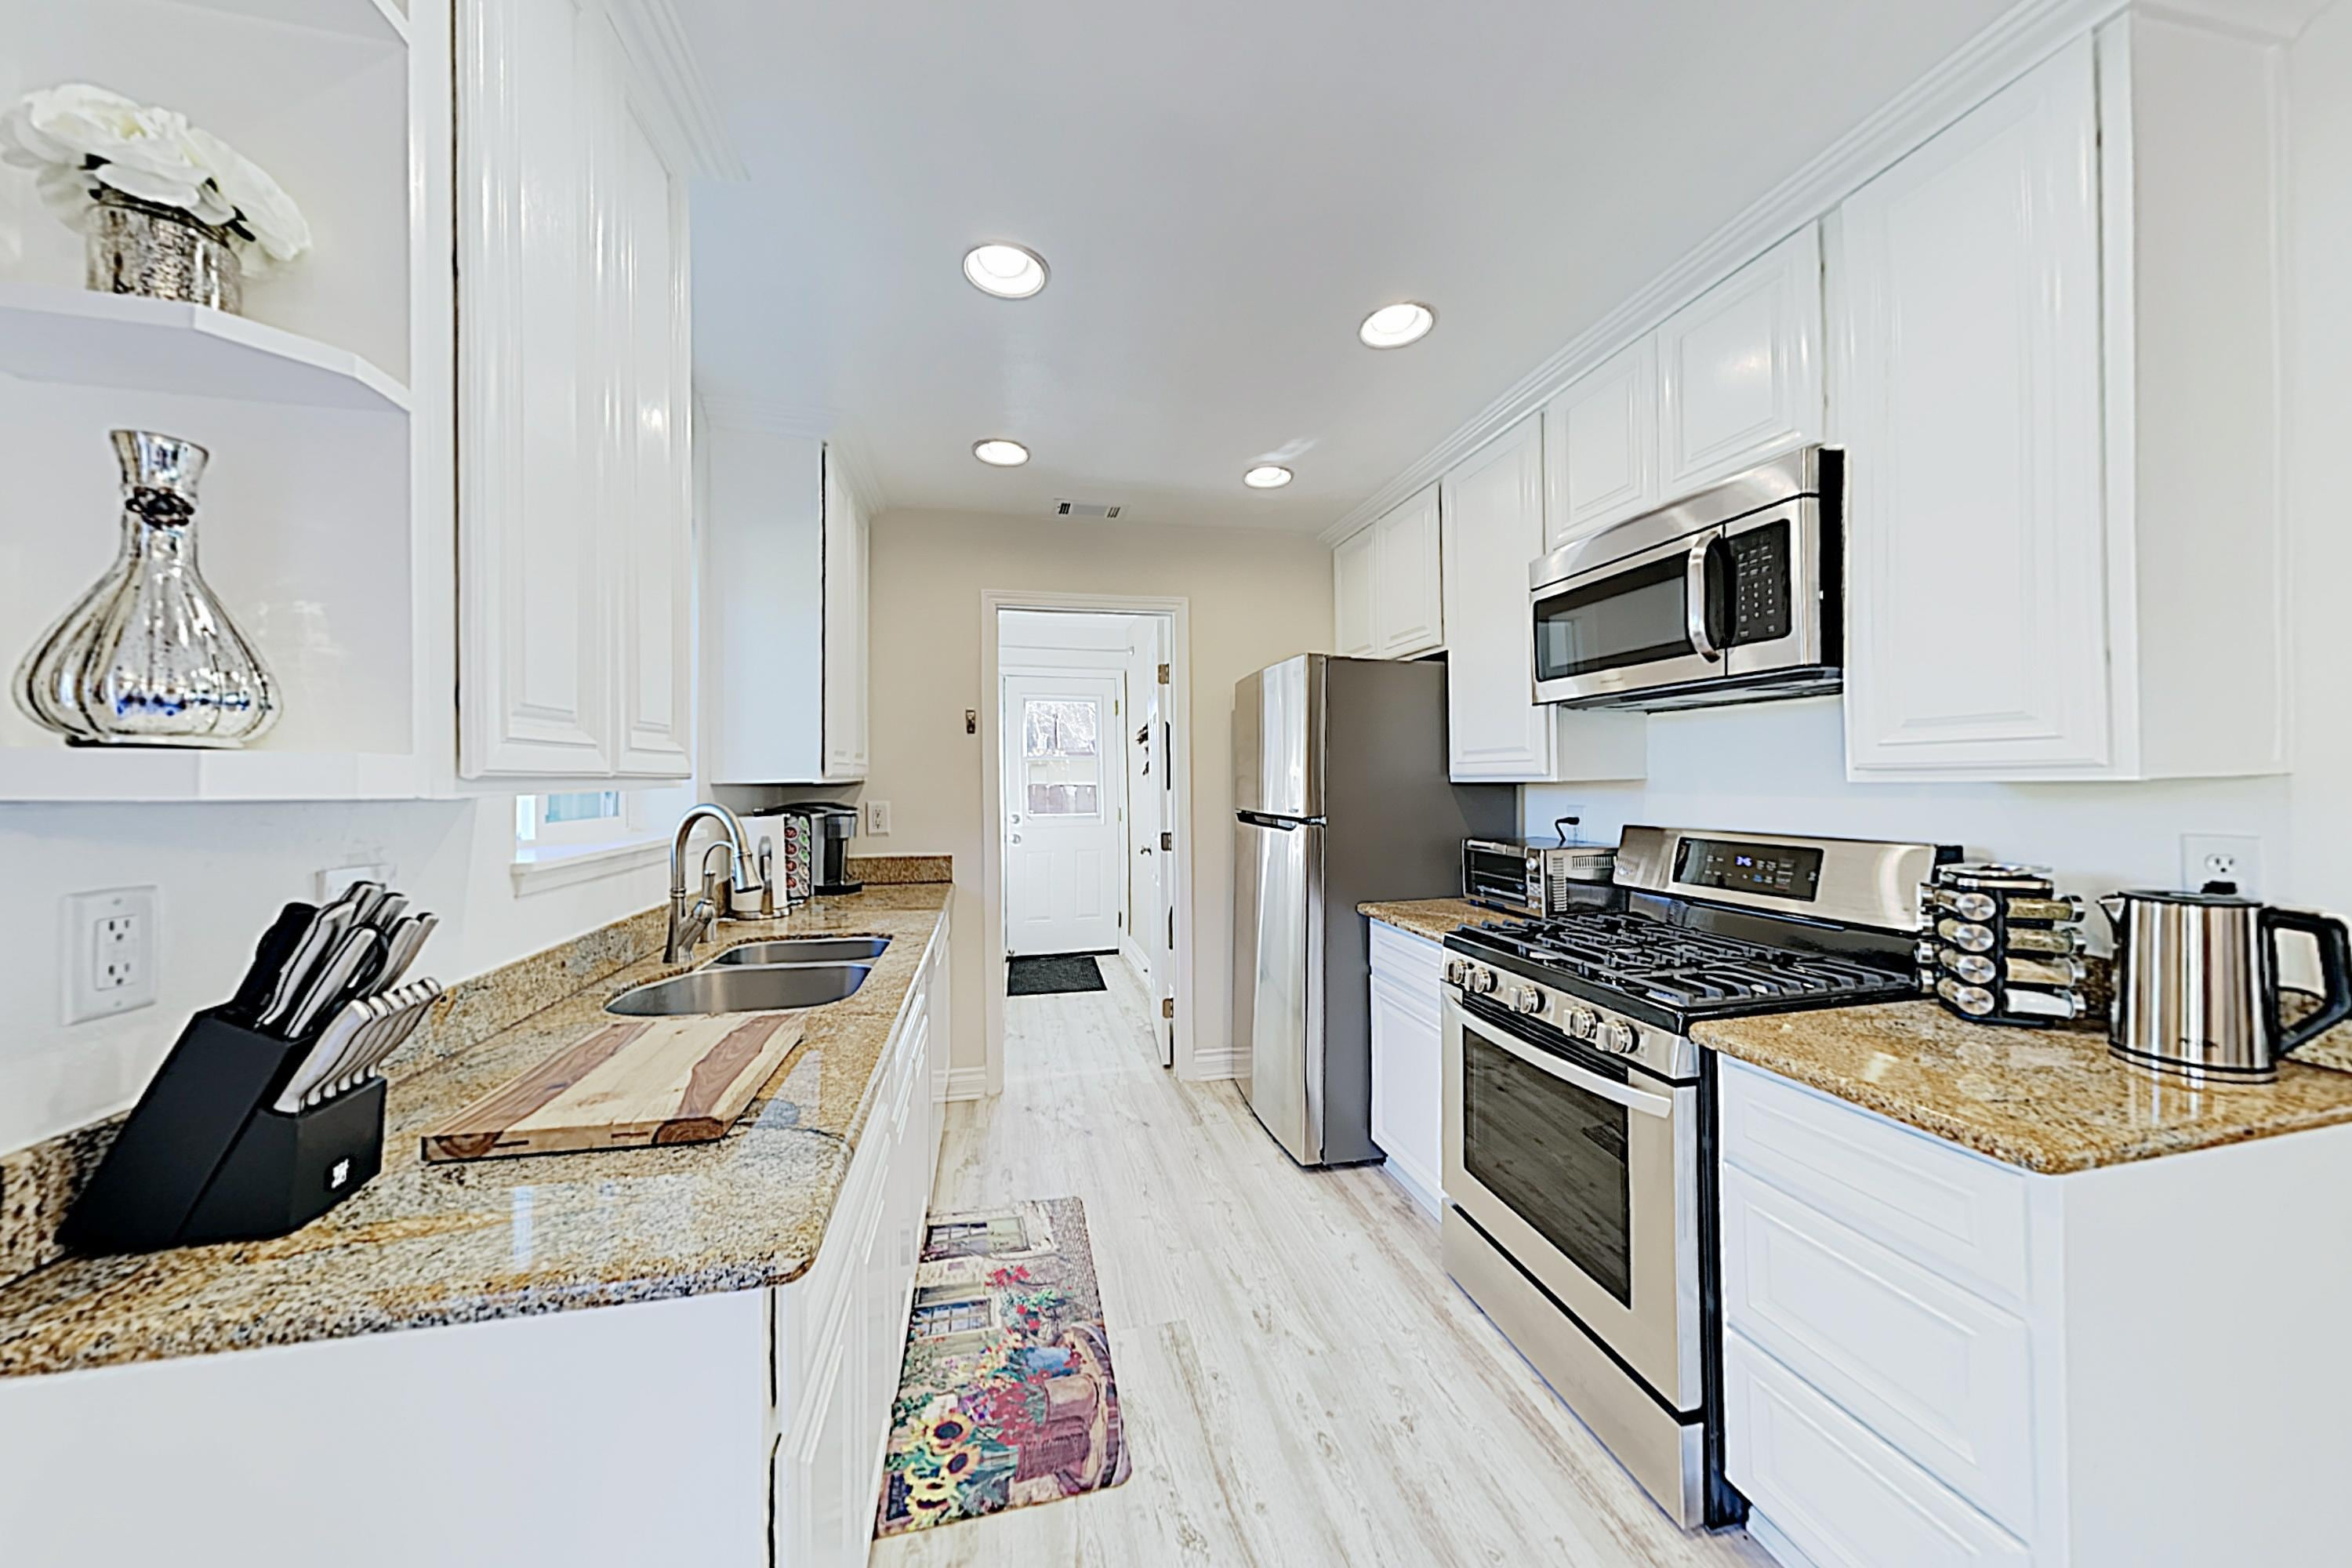 The upscale kitchen offers a full suite of stainless steel appliances.